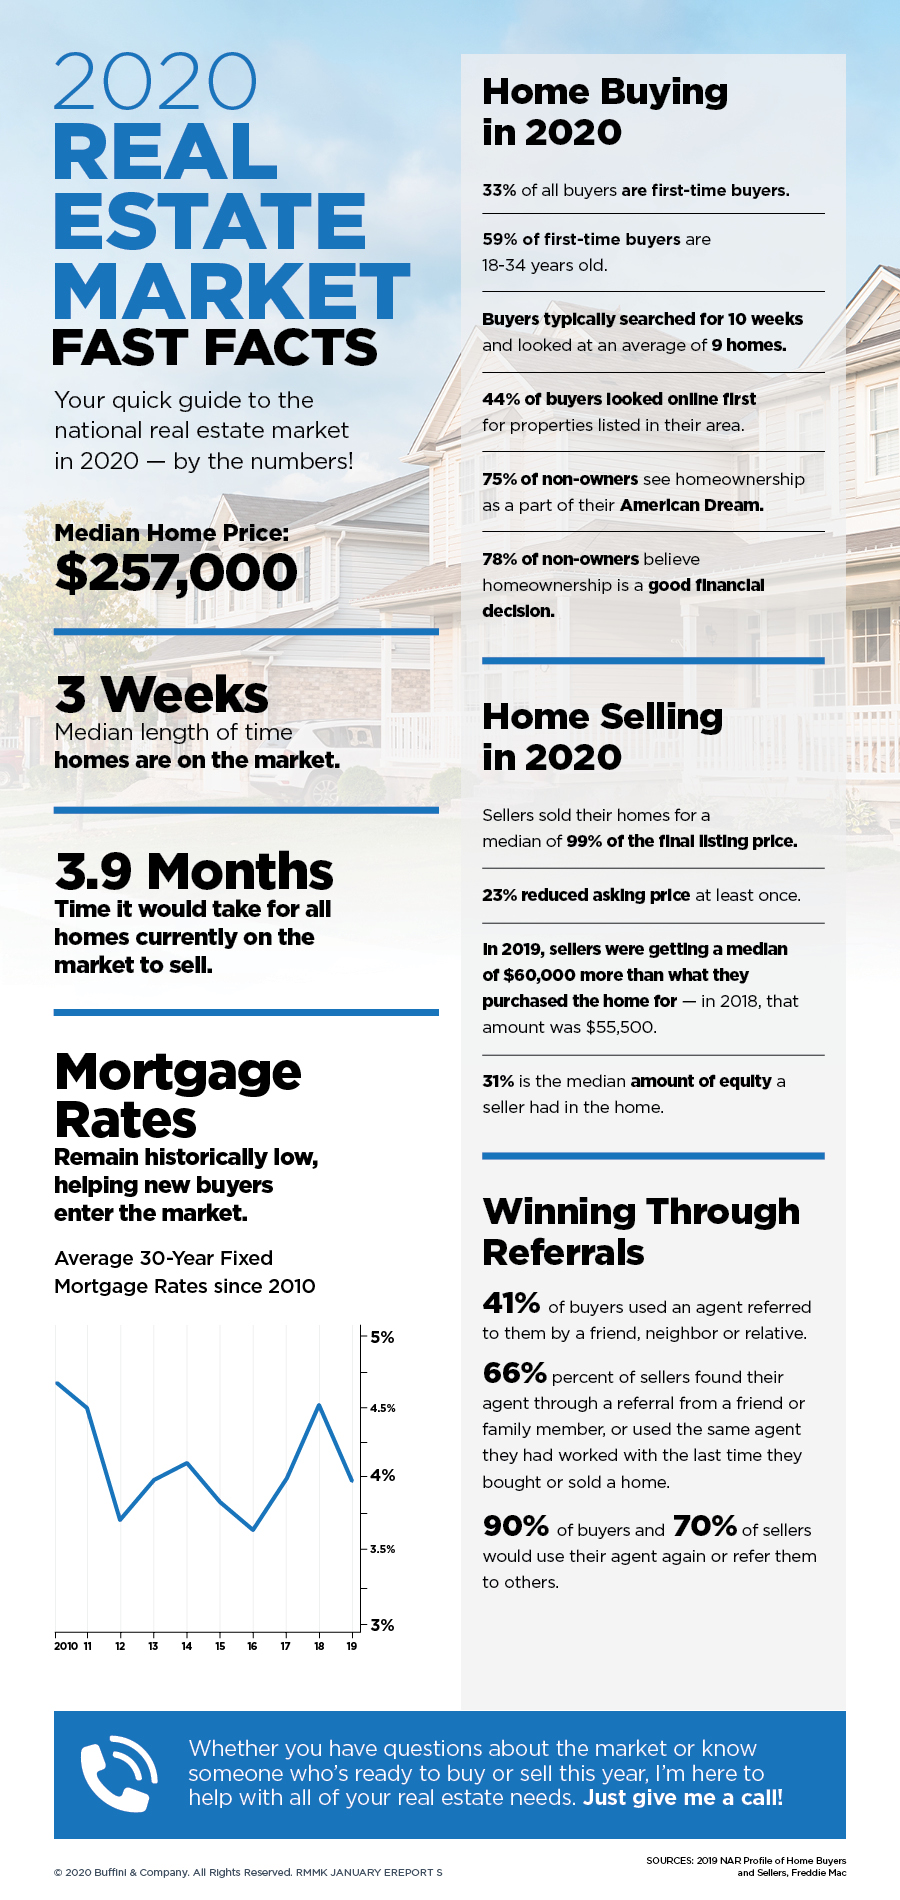 The 2020 real estate market fast facts